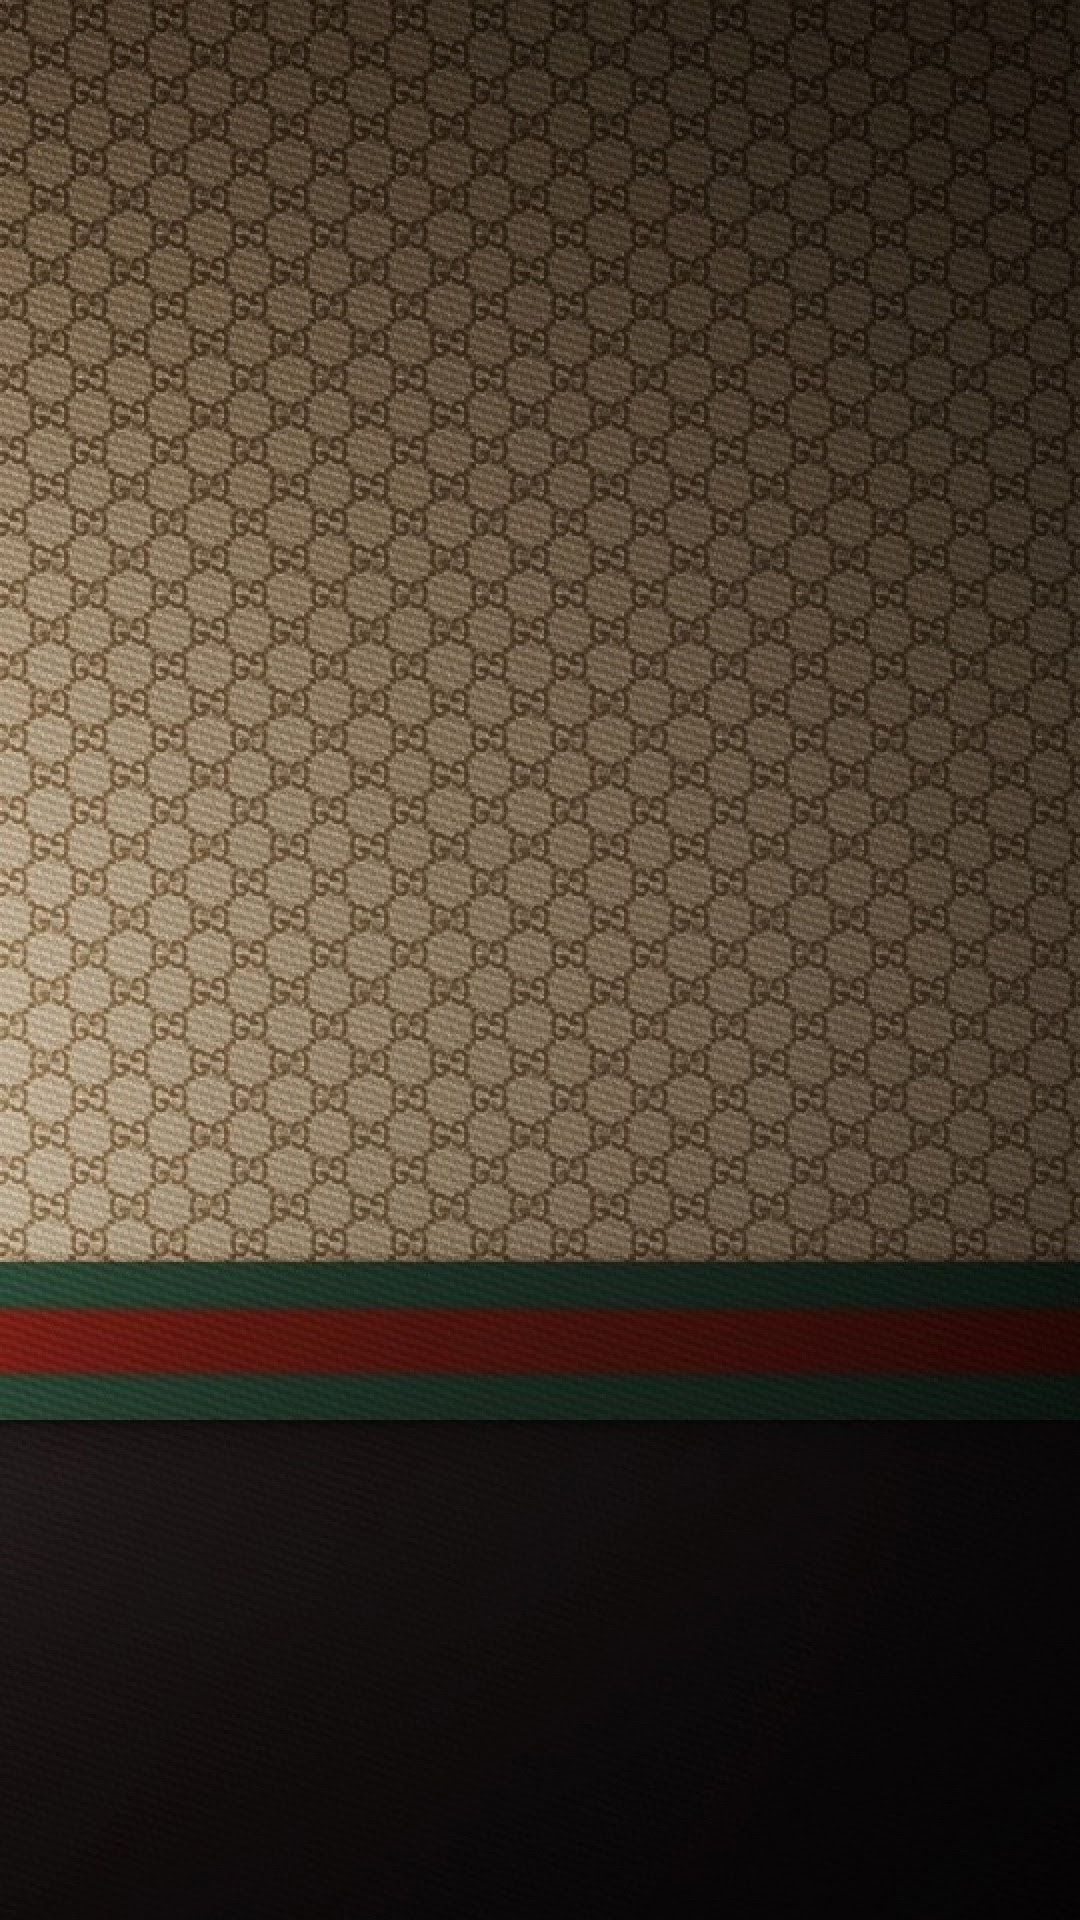 Download 107 Wallpaper Iphone Gucci Gratis Terbaik